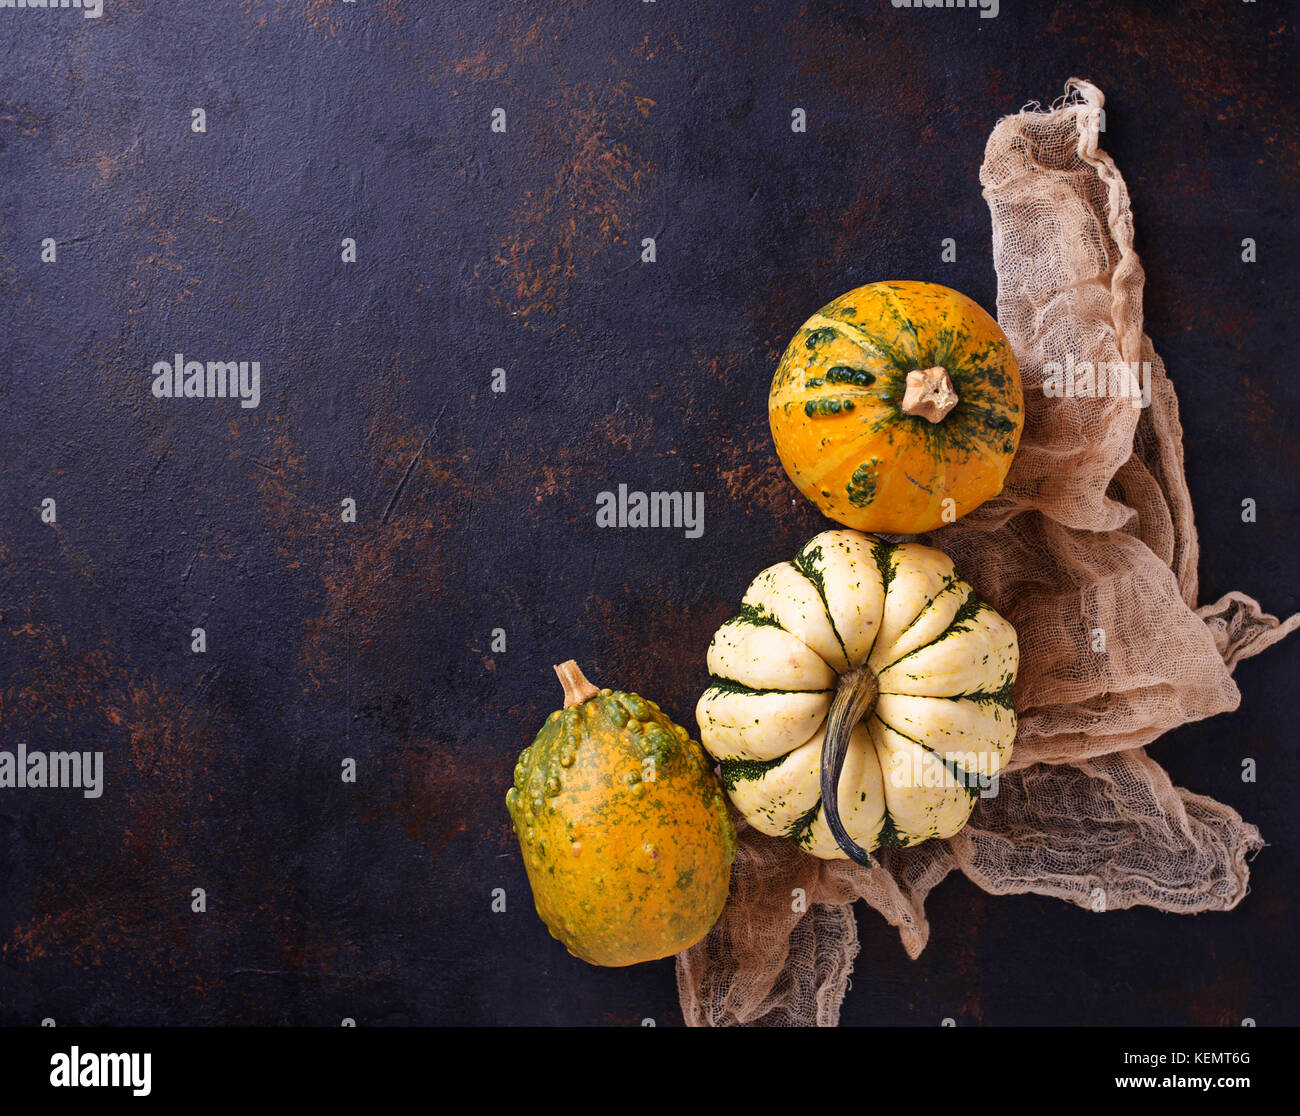 Decorative pumpkins on rusty background  - Stock Image